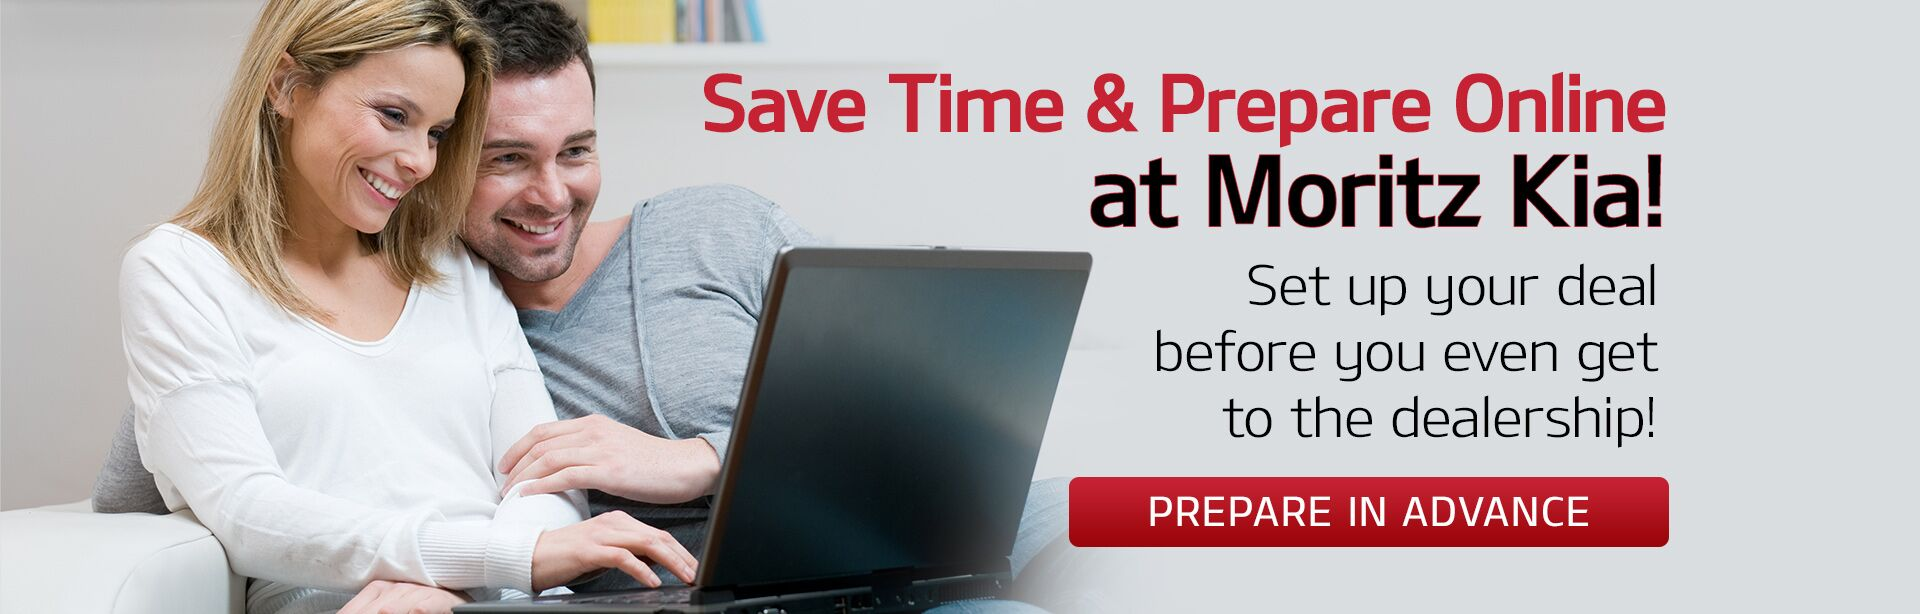 Save Time & Prepare Online